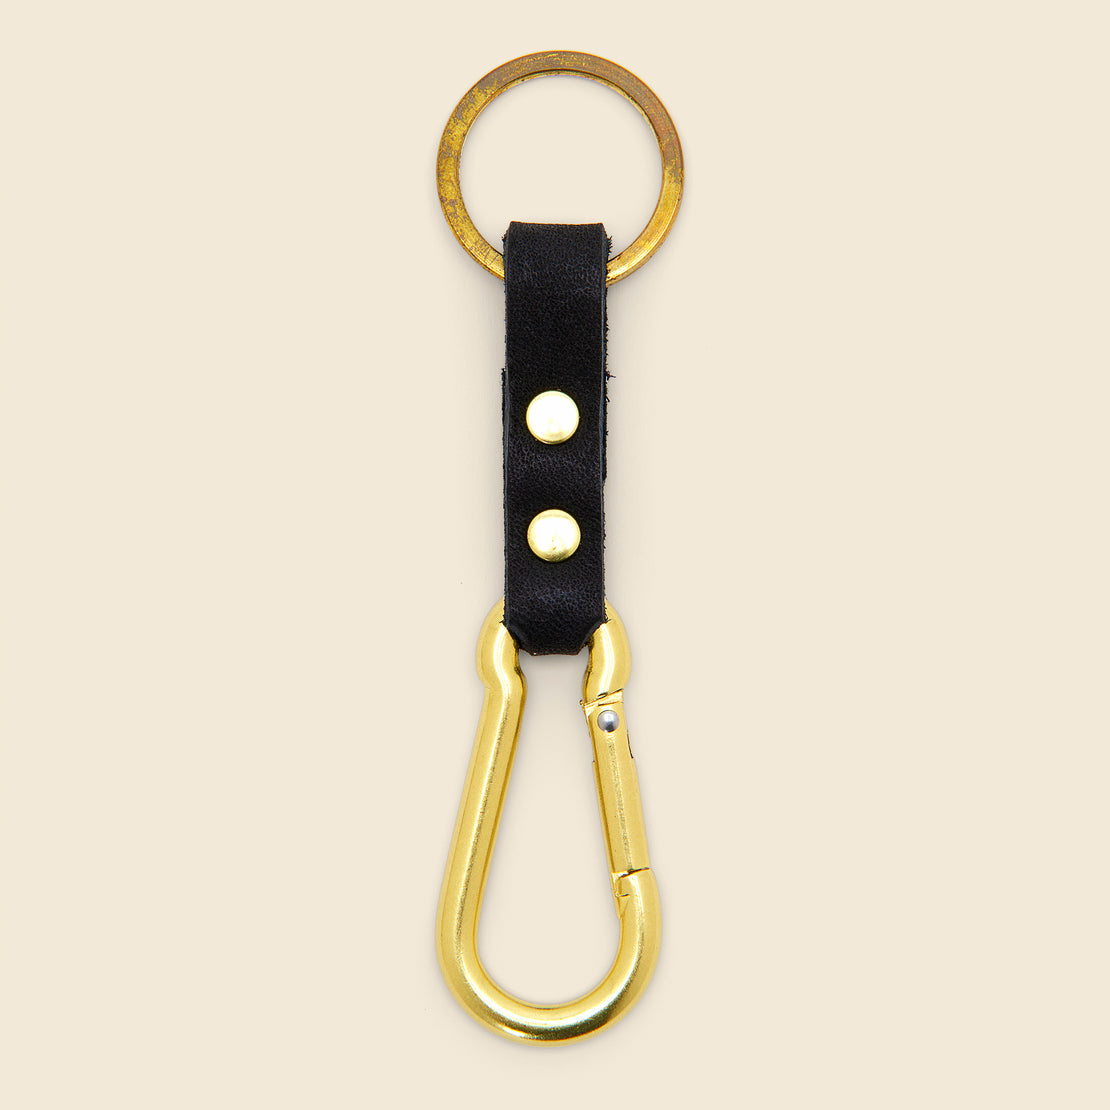 Son of a Sailor Carabiner Key Chain - Navy